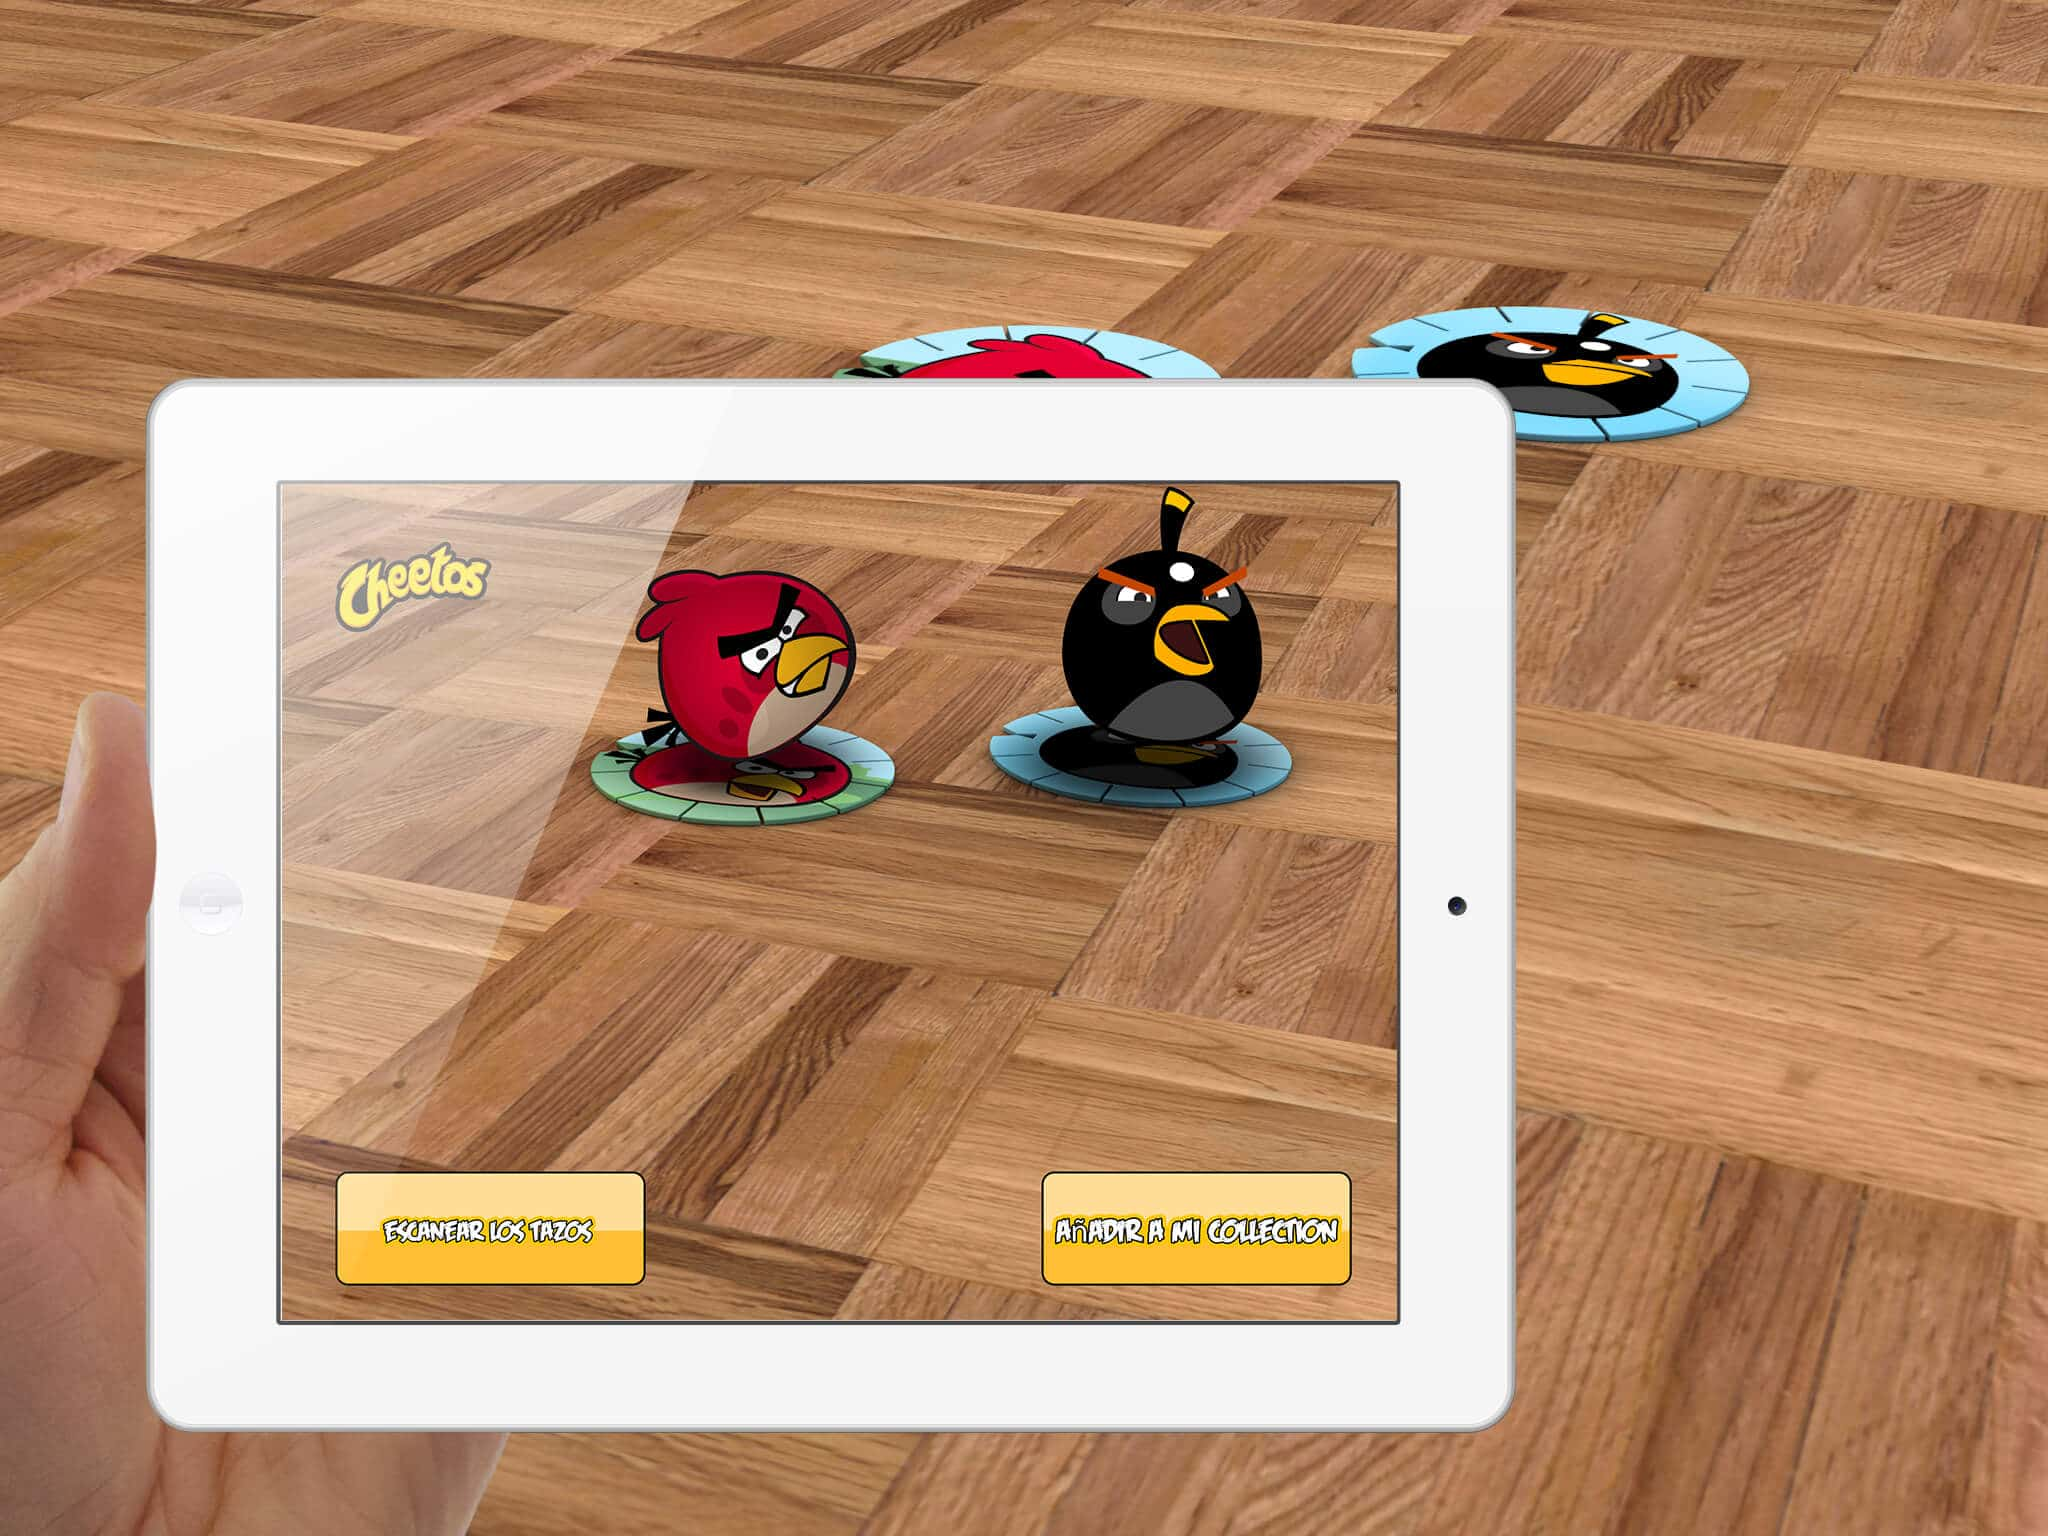 Augmented reality game Cheetos Angry Birds